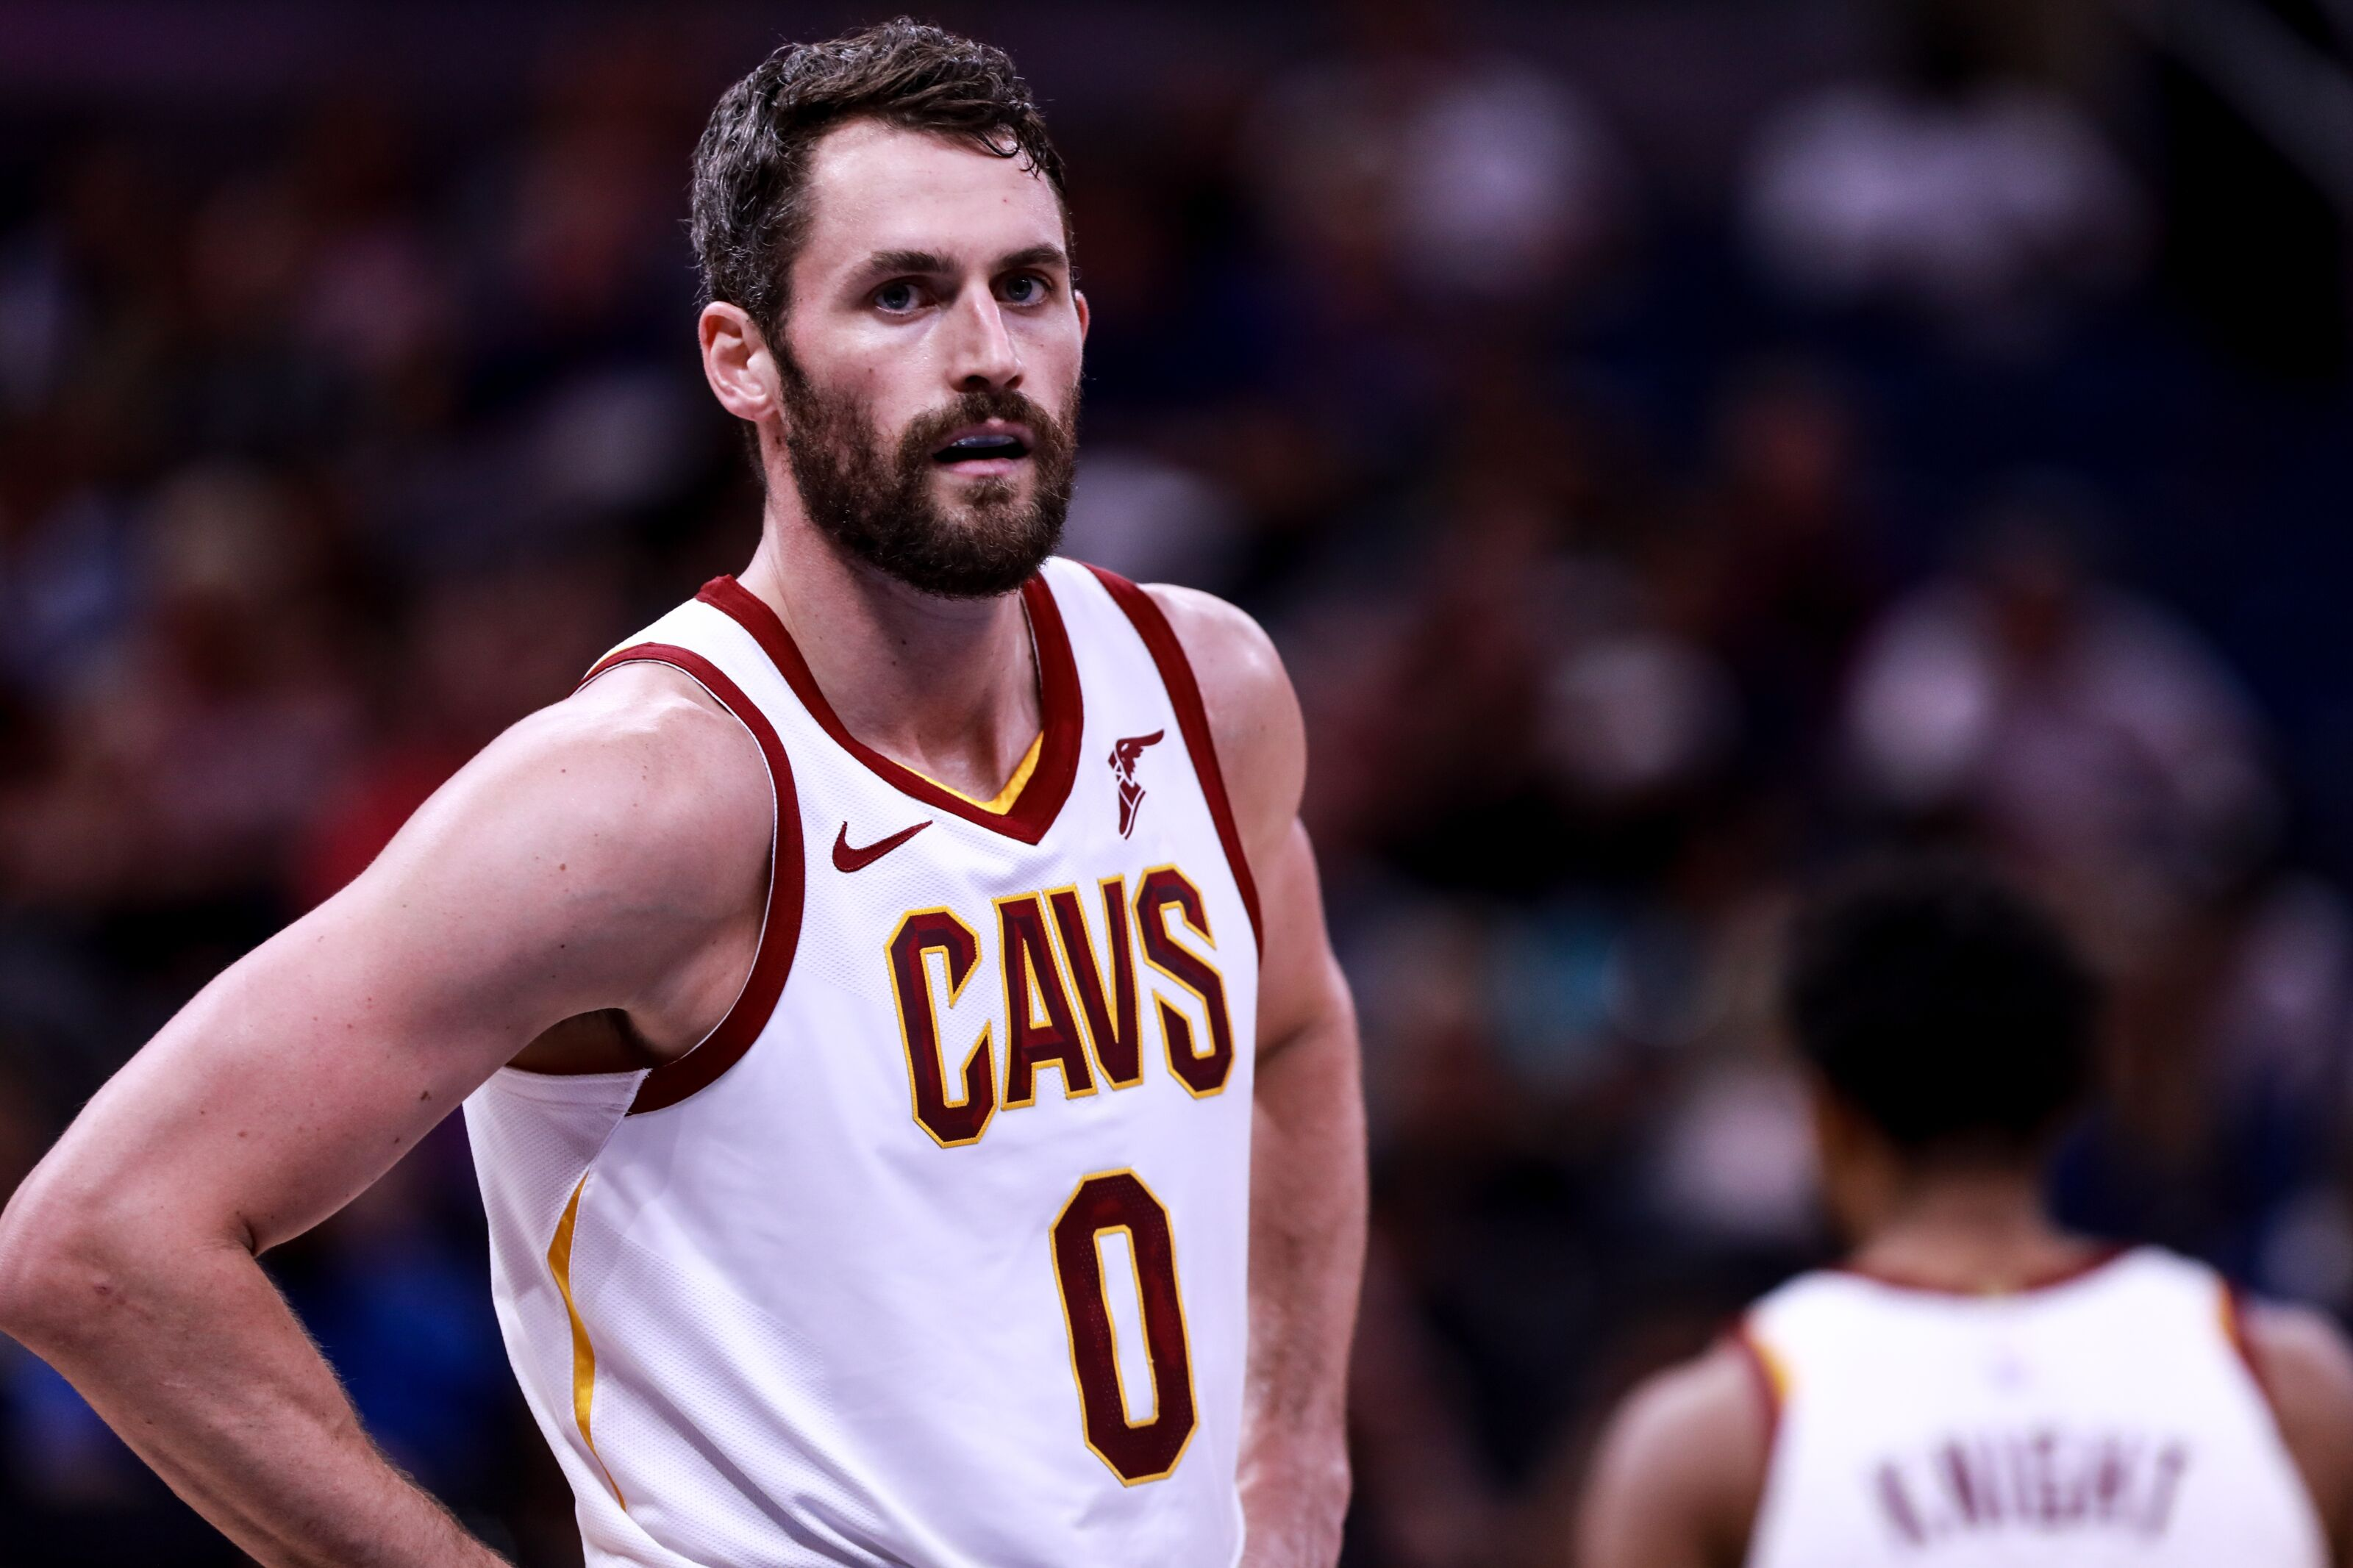 Report: Cavaliers' Kevin Love suffered a lower back contusion